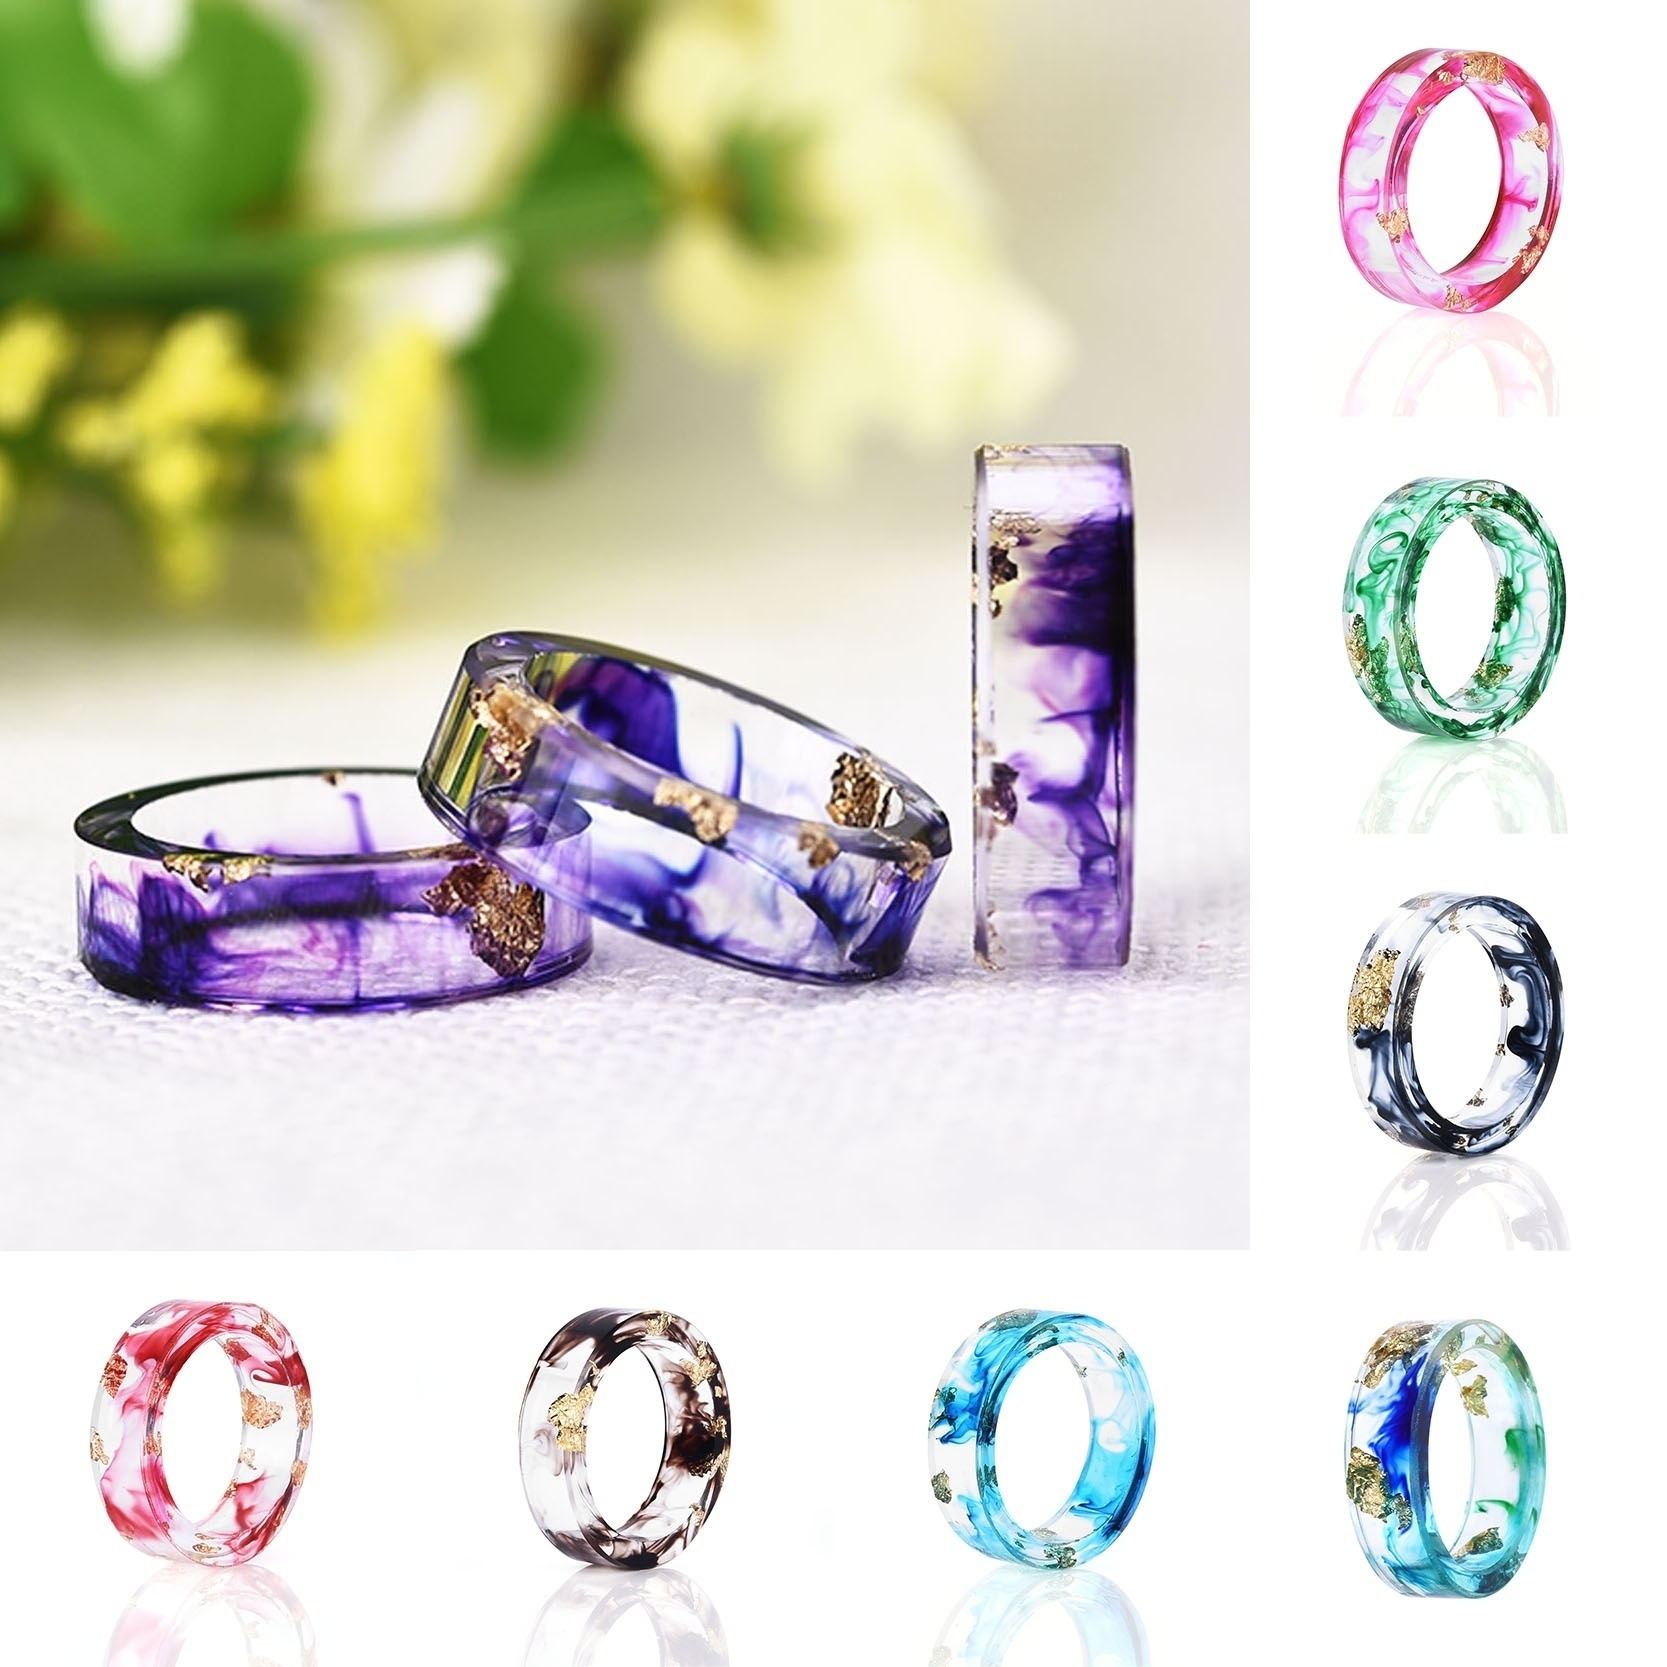 9 Colors Gold Foil Paper Inside Epoxy Resin Ring Transparent Handmade Dried Flower Resin Rings for Women Party Jewelry Dropship(China)